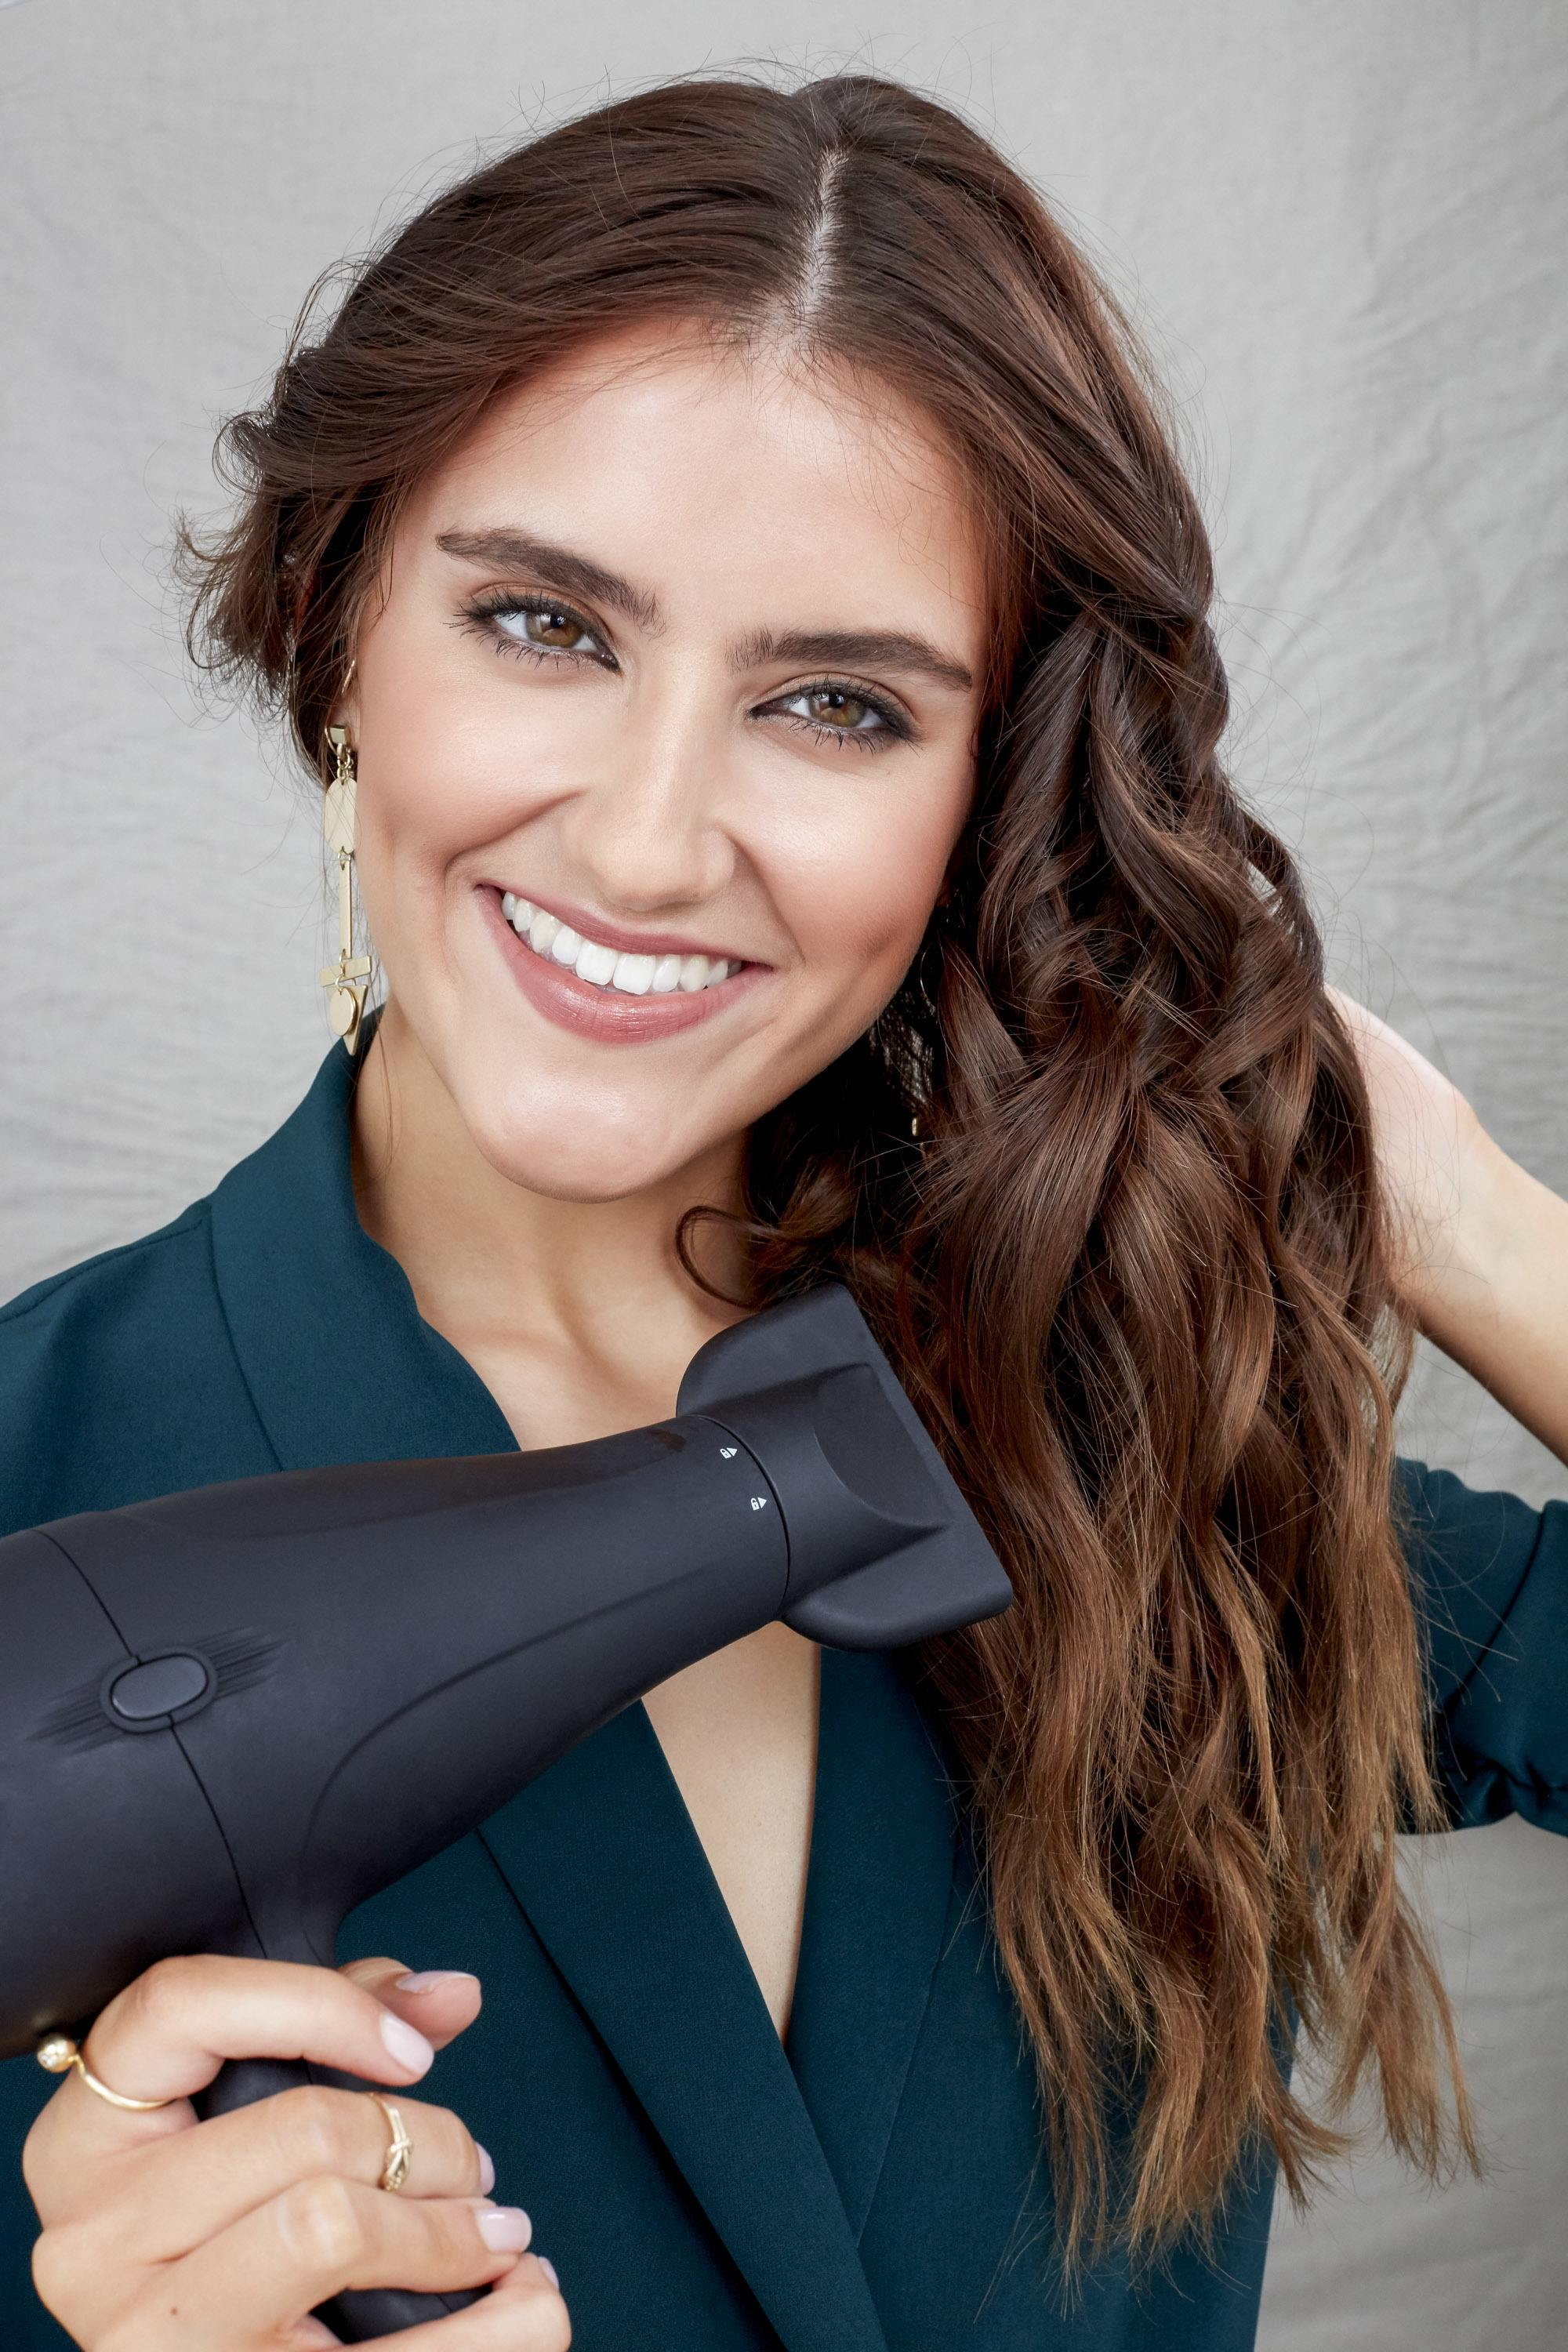 Keratin shampoo: Model with long brown wavy hair holding a hairdryer wearing a dark green jacket.